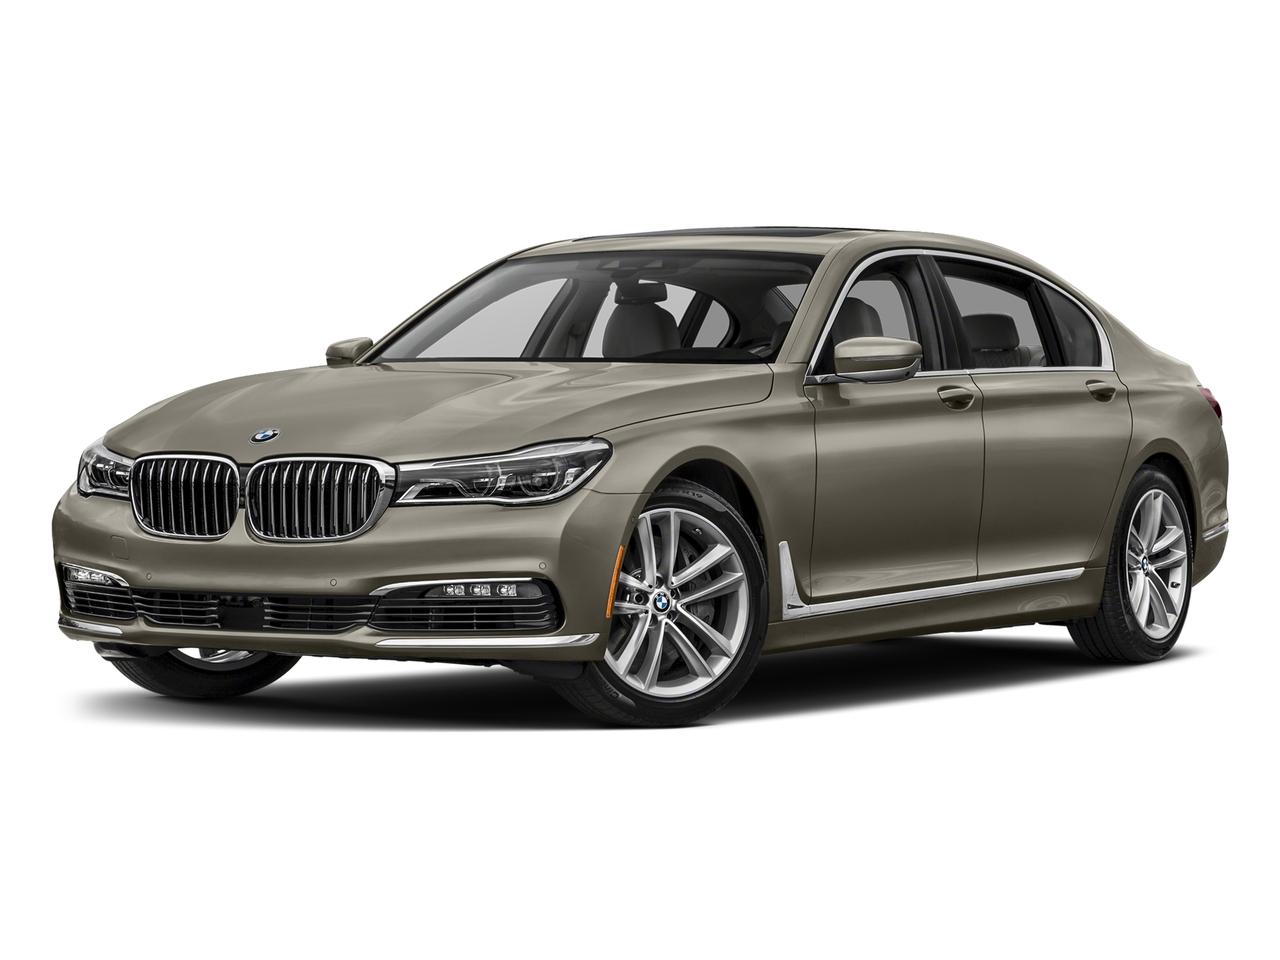 2018 BMW 750i Vehicle Photo in HOUSTON, TX 77002